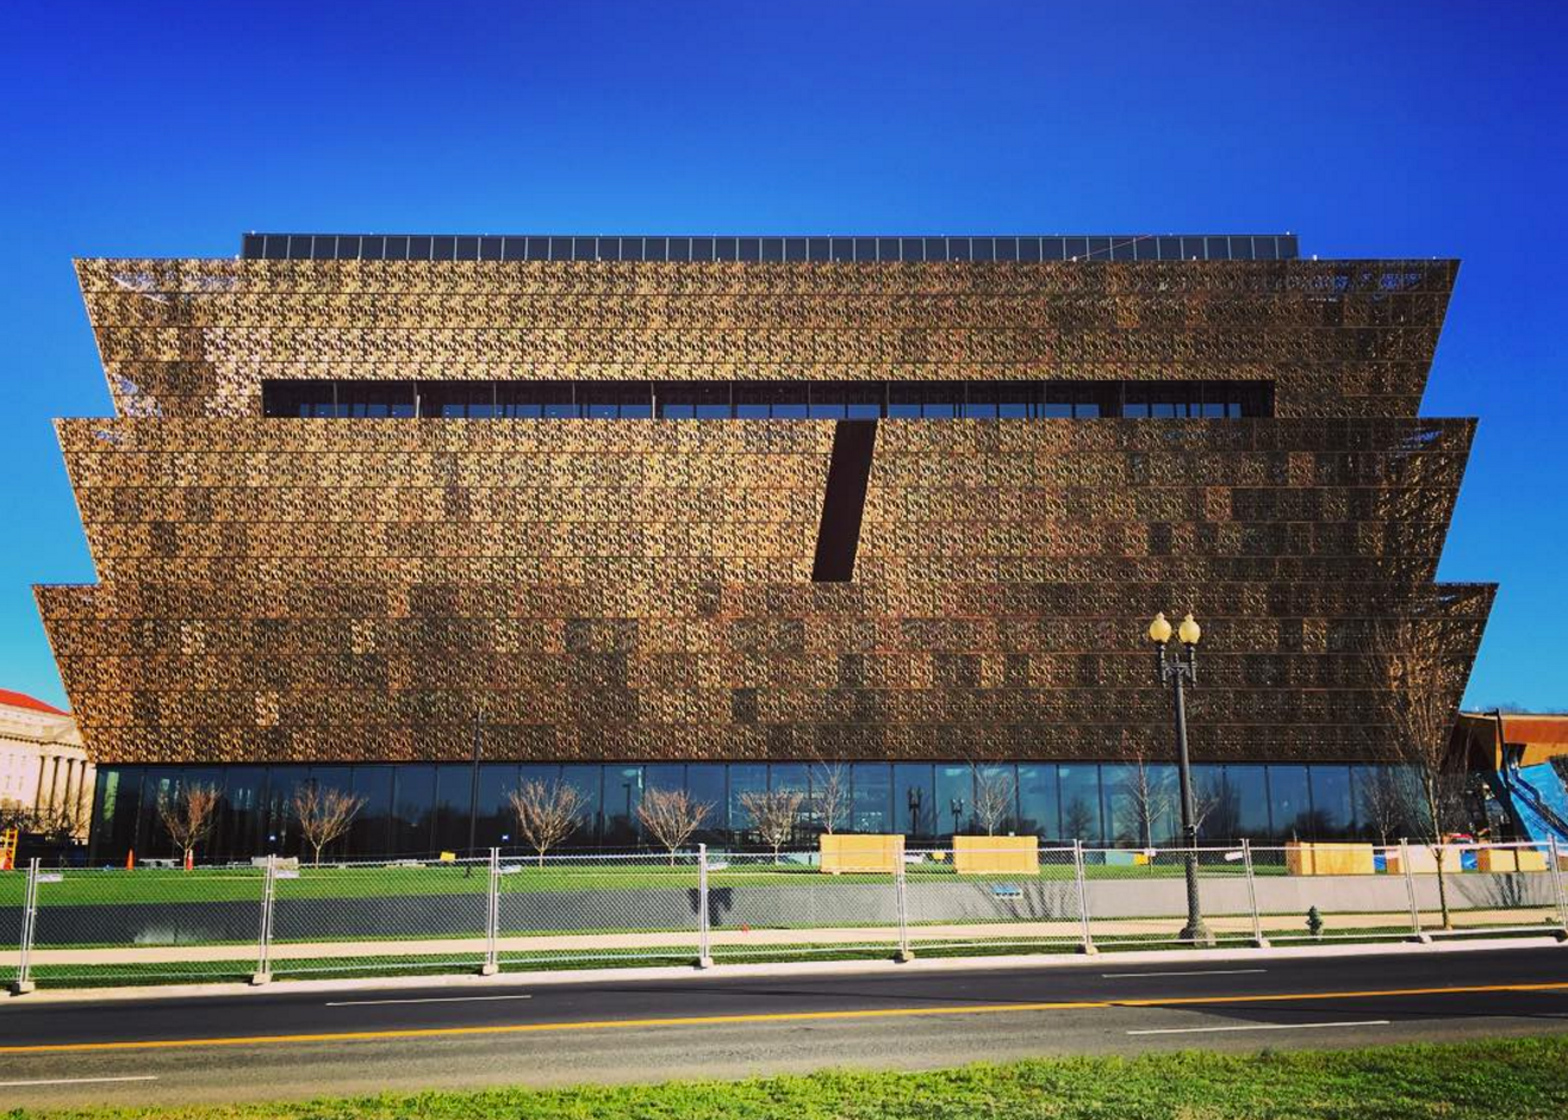 David Adjaye's Smithsonian National Museum Of African American History And Culture (NMAAHC)